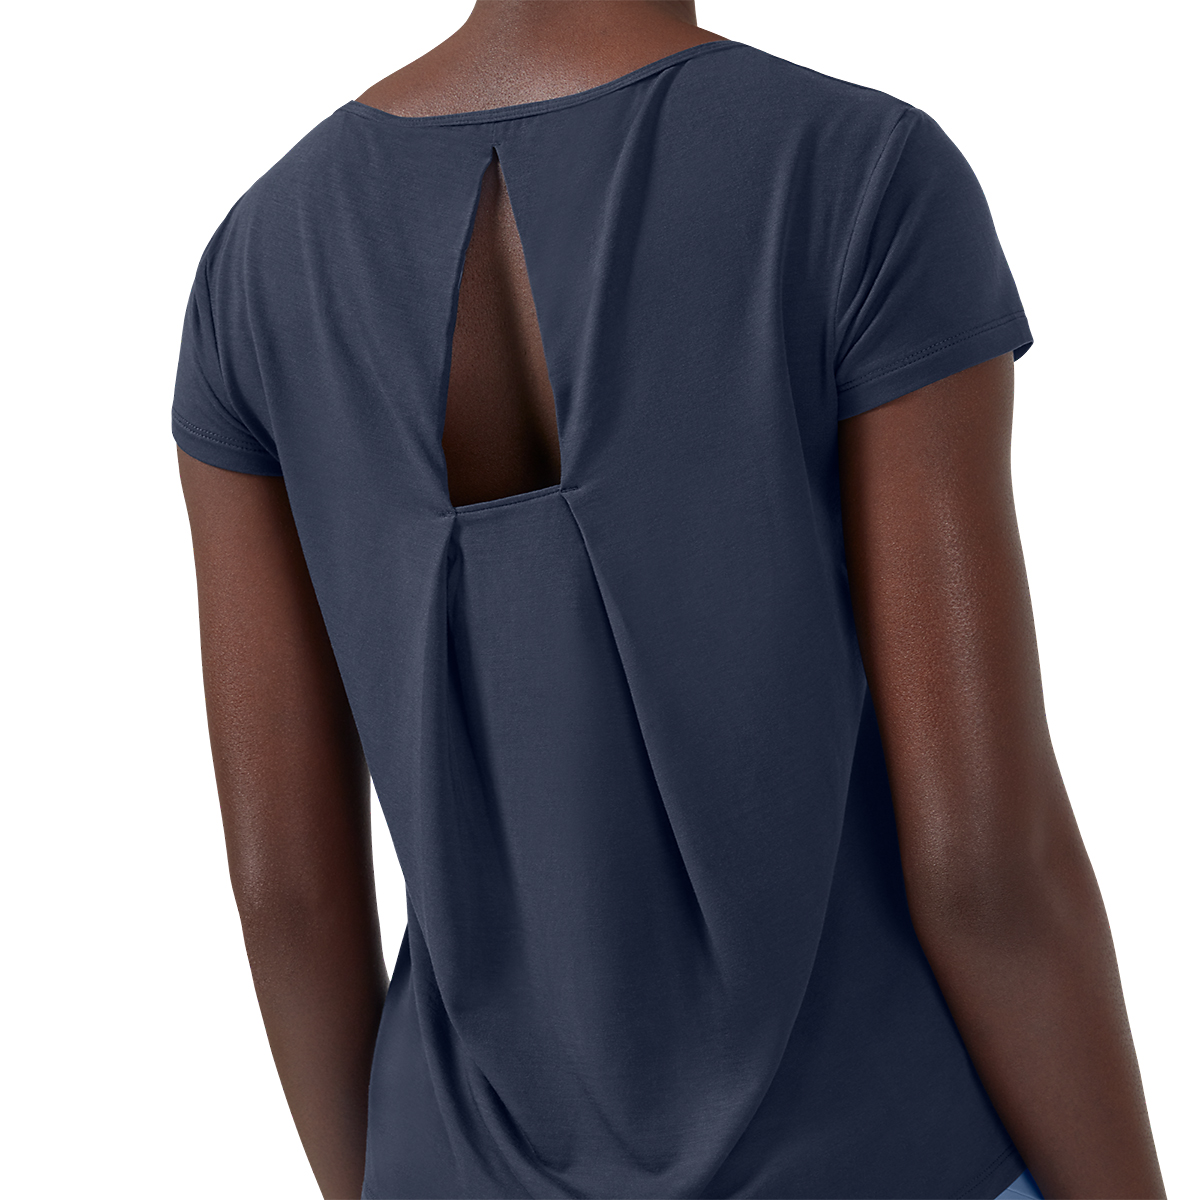 Women's On Active-T Breathe Tee - Color: Navy - Size: XS, Navy, large, image 4